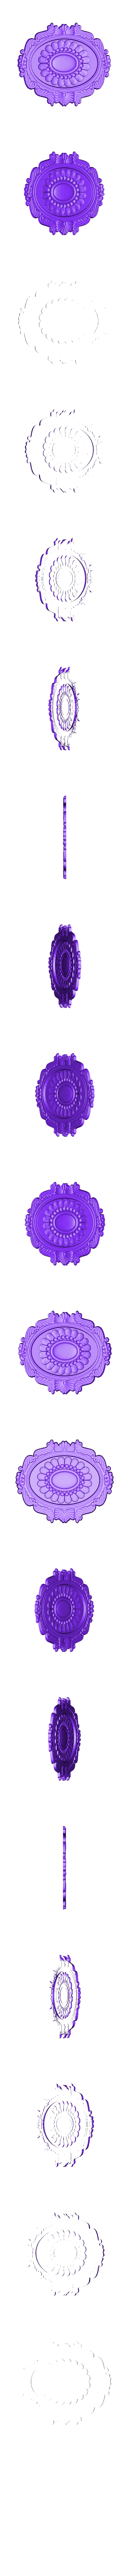 Oval.stl Download free STL file Oval Design • 3D printer object, Account-Closed